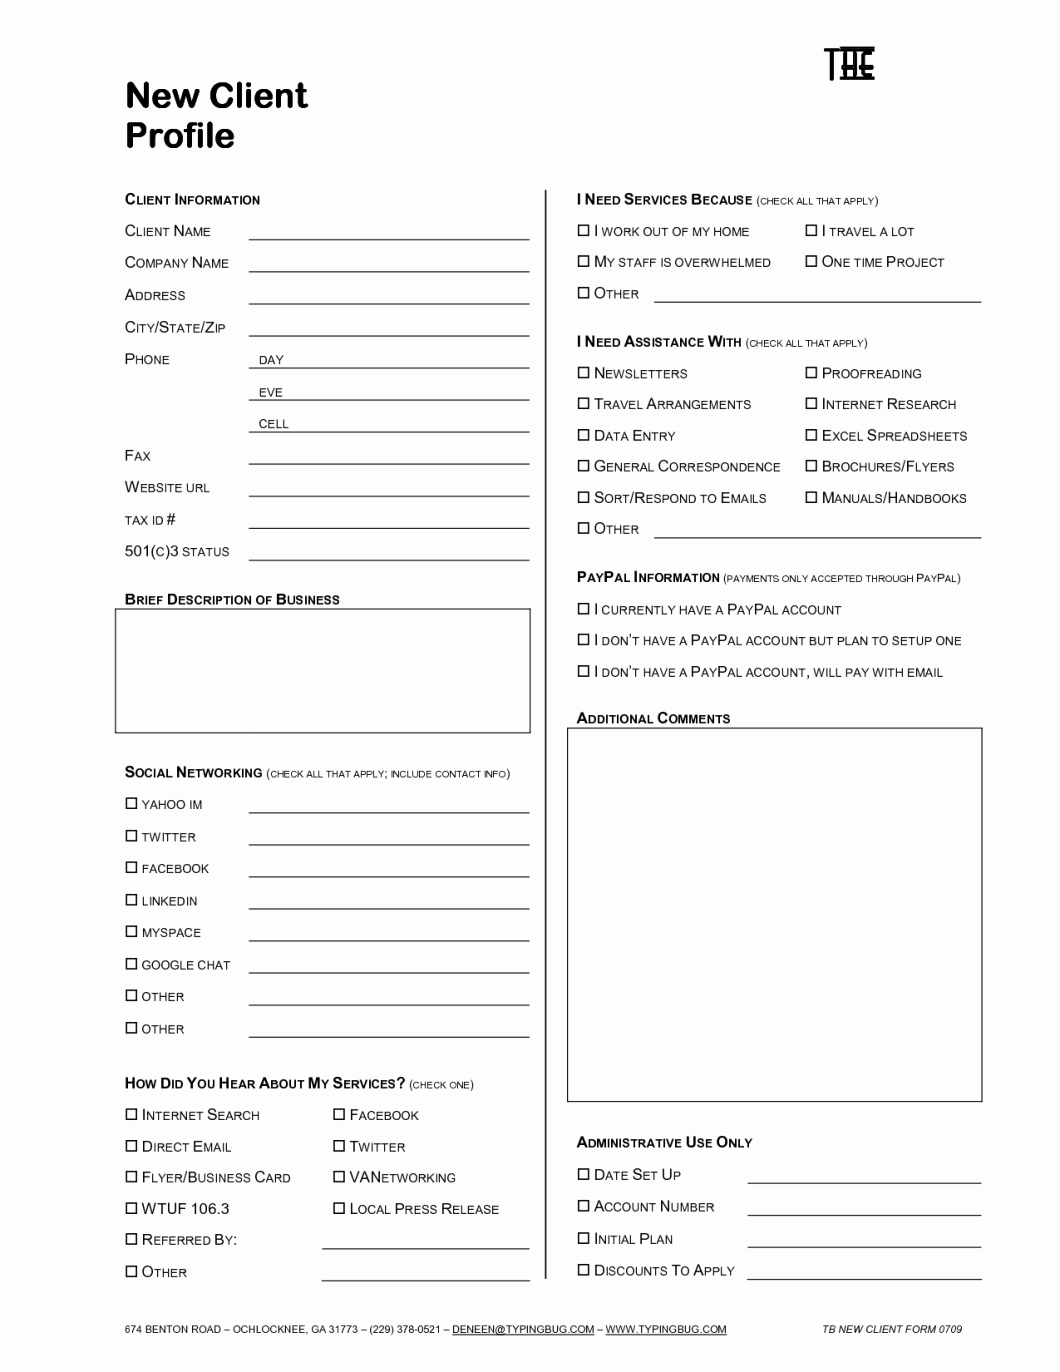 New Client form Template Inspirational Interior Design Client Profile form